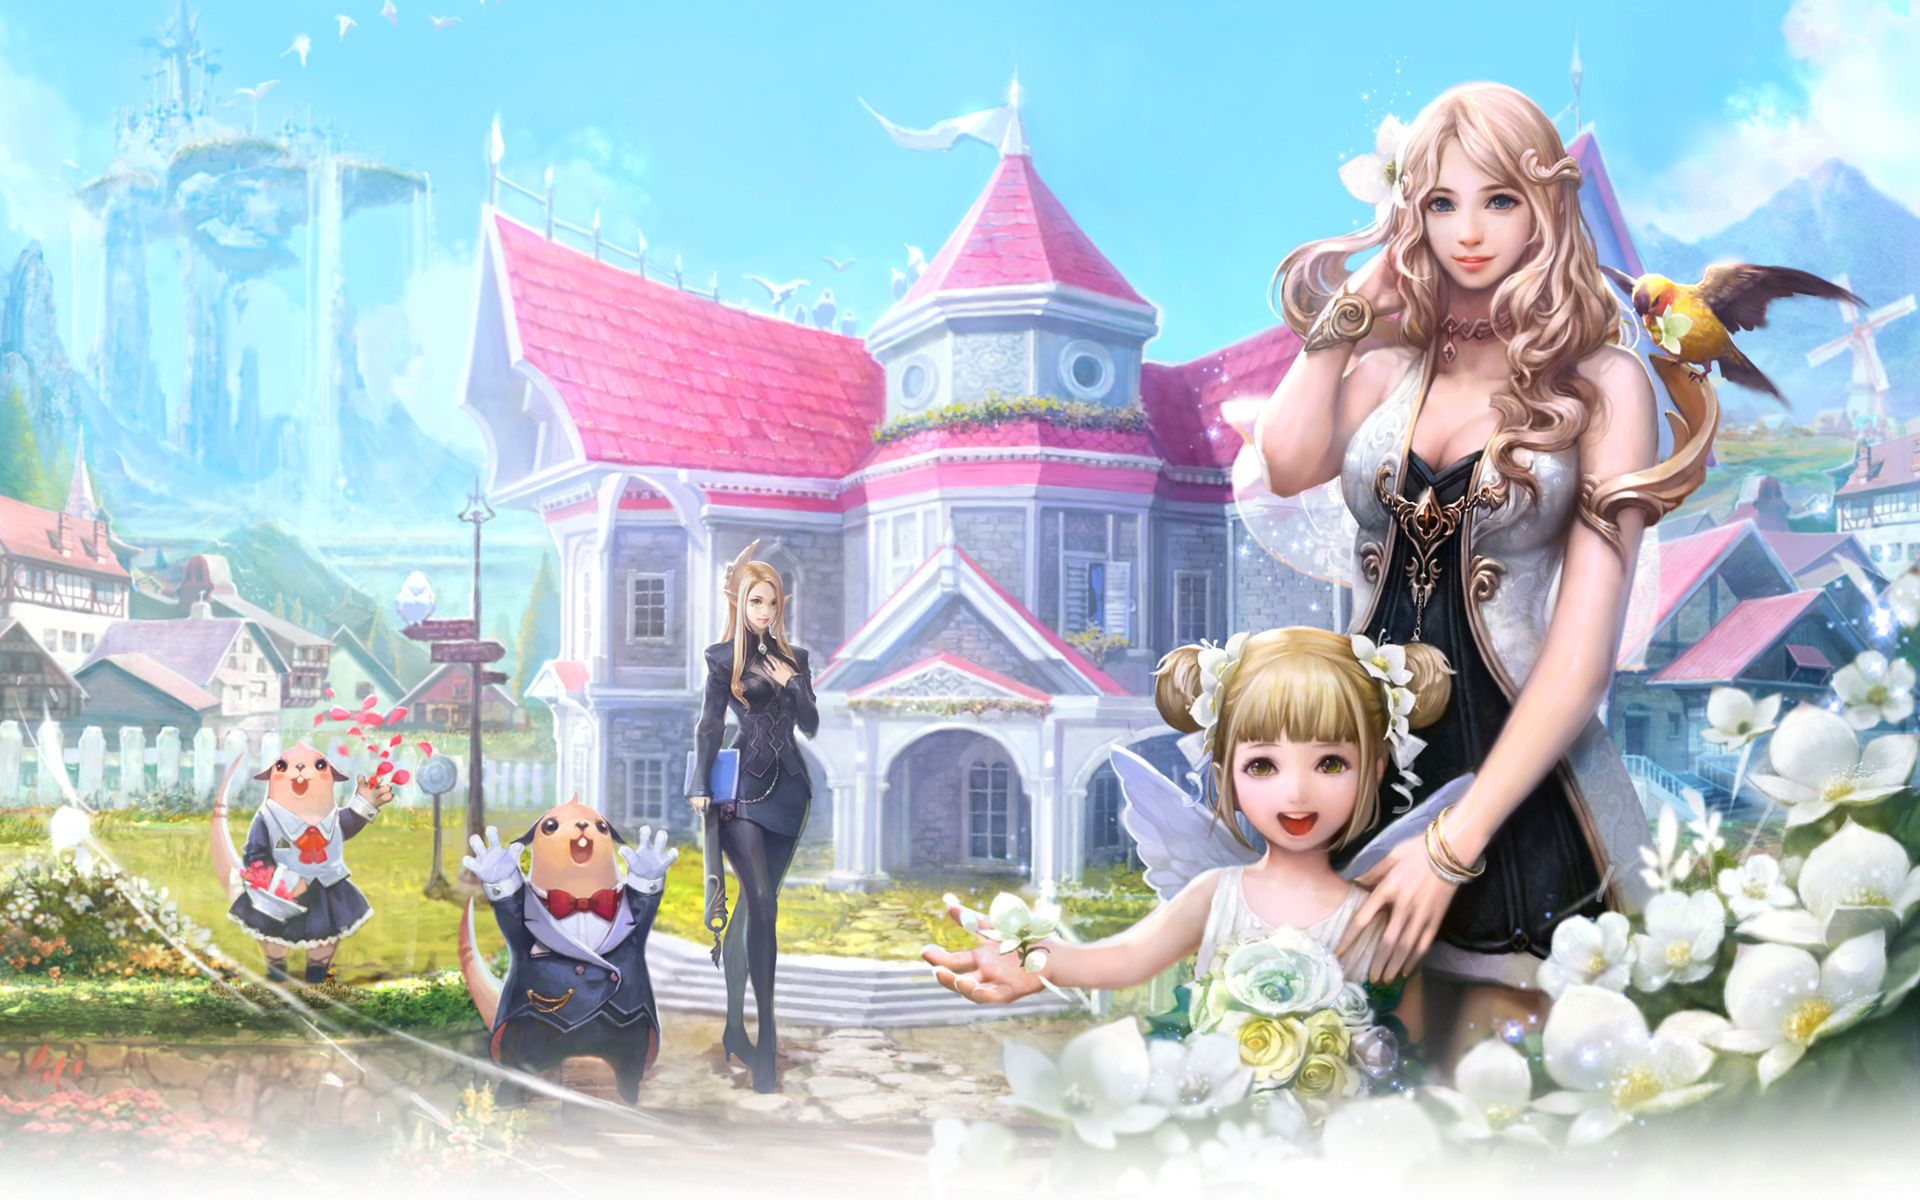 In summer hd wallpaper download cartoon wallpaper html code - Click Here To Download In Hd Format Aion Fantasy Game Http